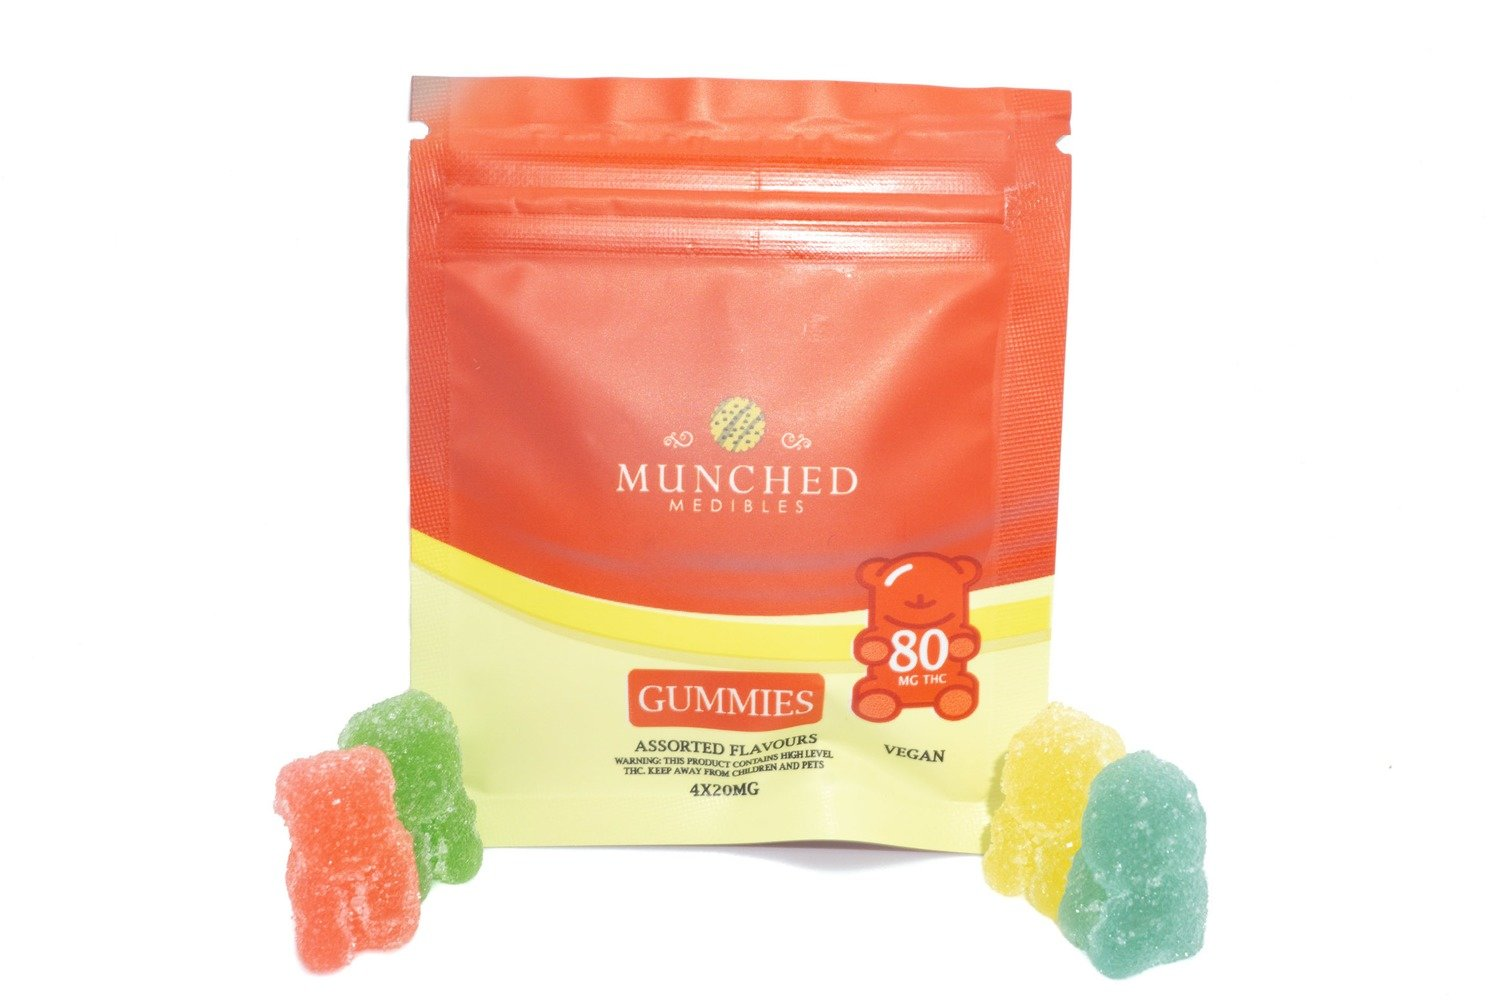 Munched Medibles (80mg) (Vegan)